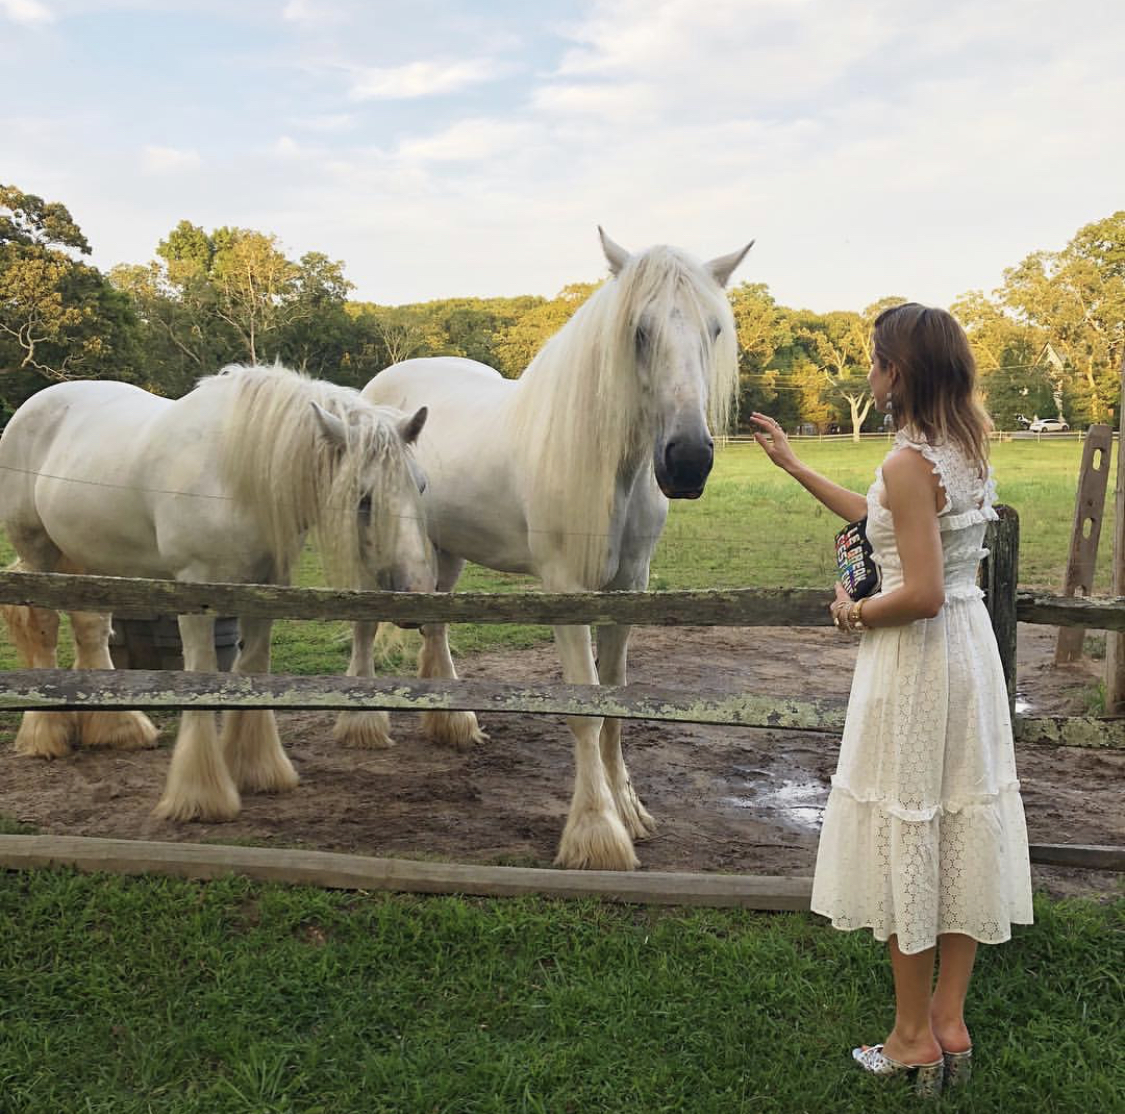 """WHITE SHIRES - TESS AND ISABELLE    In 2015, Mary Lou Kaler of Stable Environment Equine Rehabilitation (S.E.E.R.) rescued four White Shire horses after they were found severely malnourished and abused by their former owner. Pictured above, Isabelle and Tess were moved to local farm land in East Hampton generously donated by    Dune Alpin   , where they could recover from their desperate situation and be given a new lease on life. Over time, the four beauties established a strong presence in the area with locals calling them a """"blessing for the whole town"""" and """"magical, noble beings."""" However, the care and keeping of these horses is no small task with shelter, food and medical needs adding up to thousands a month and no consistent winter housing available.     Our Alliance Member and photographer Lincoln Pilcher curated The White Shire series, a collection of portraits of these gentle giants with the aim of raising awareness and funds to finance a permanent home for them at Dune Alpin by building out the existing barn to keep them warm and safe during the colder months. Inspired by this story, we dedicated our holiday event on December 11th to further spread the White Shire mission. In addition to Lincoln's photography exhibited at the event, we featured a sustainable, cruelty-free selection of retail brands curated by ethical fashion site    WWW.MAISON-DE-MODE.COM   . All proceeds go to the White Shires."""